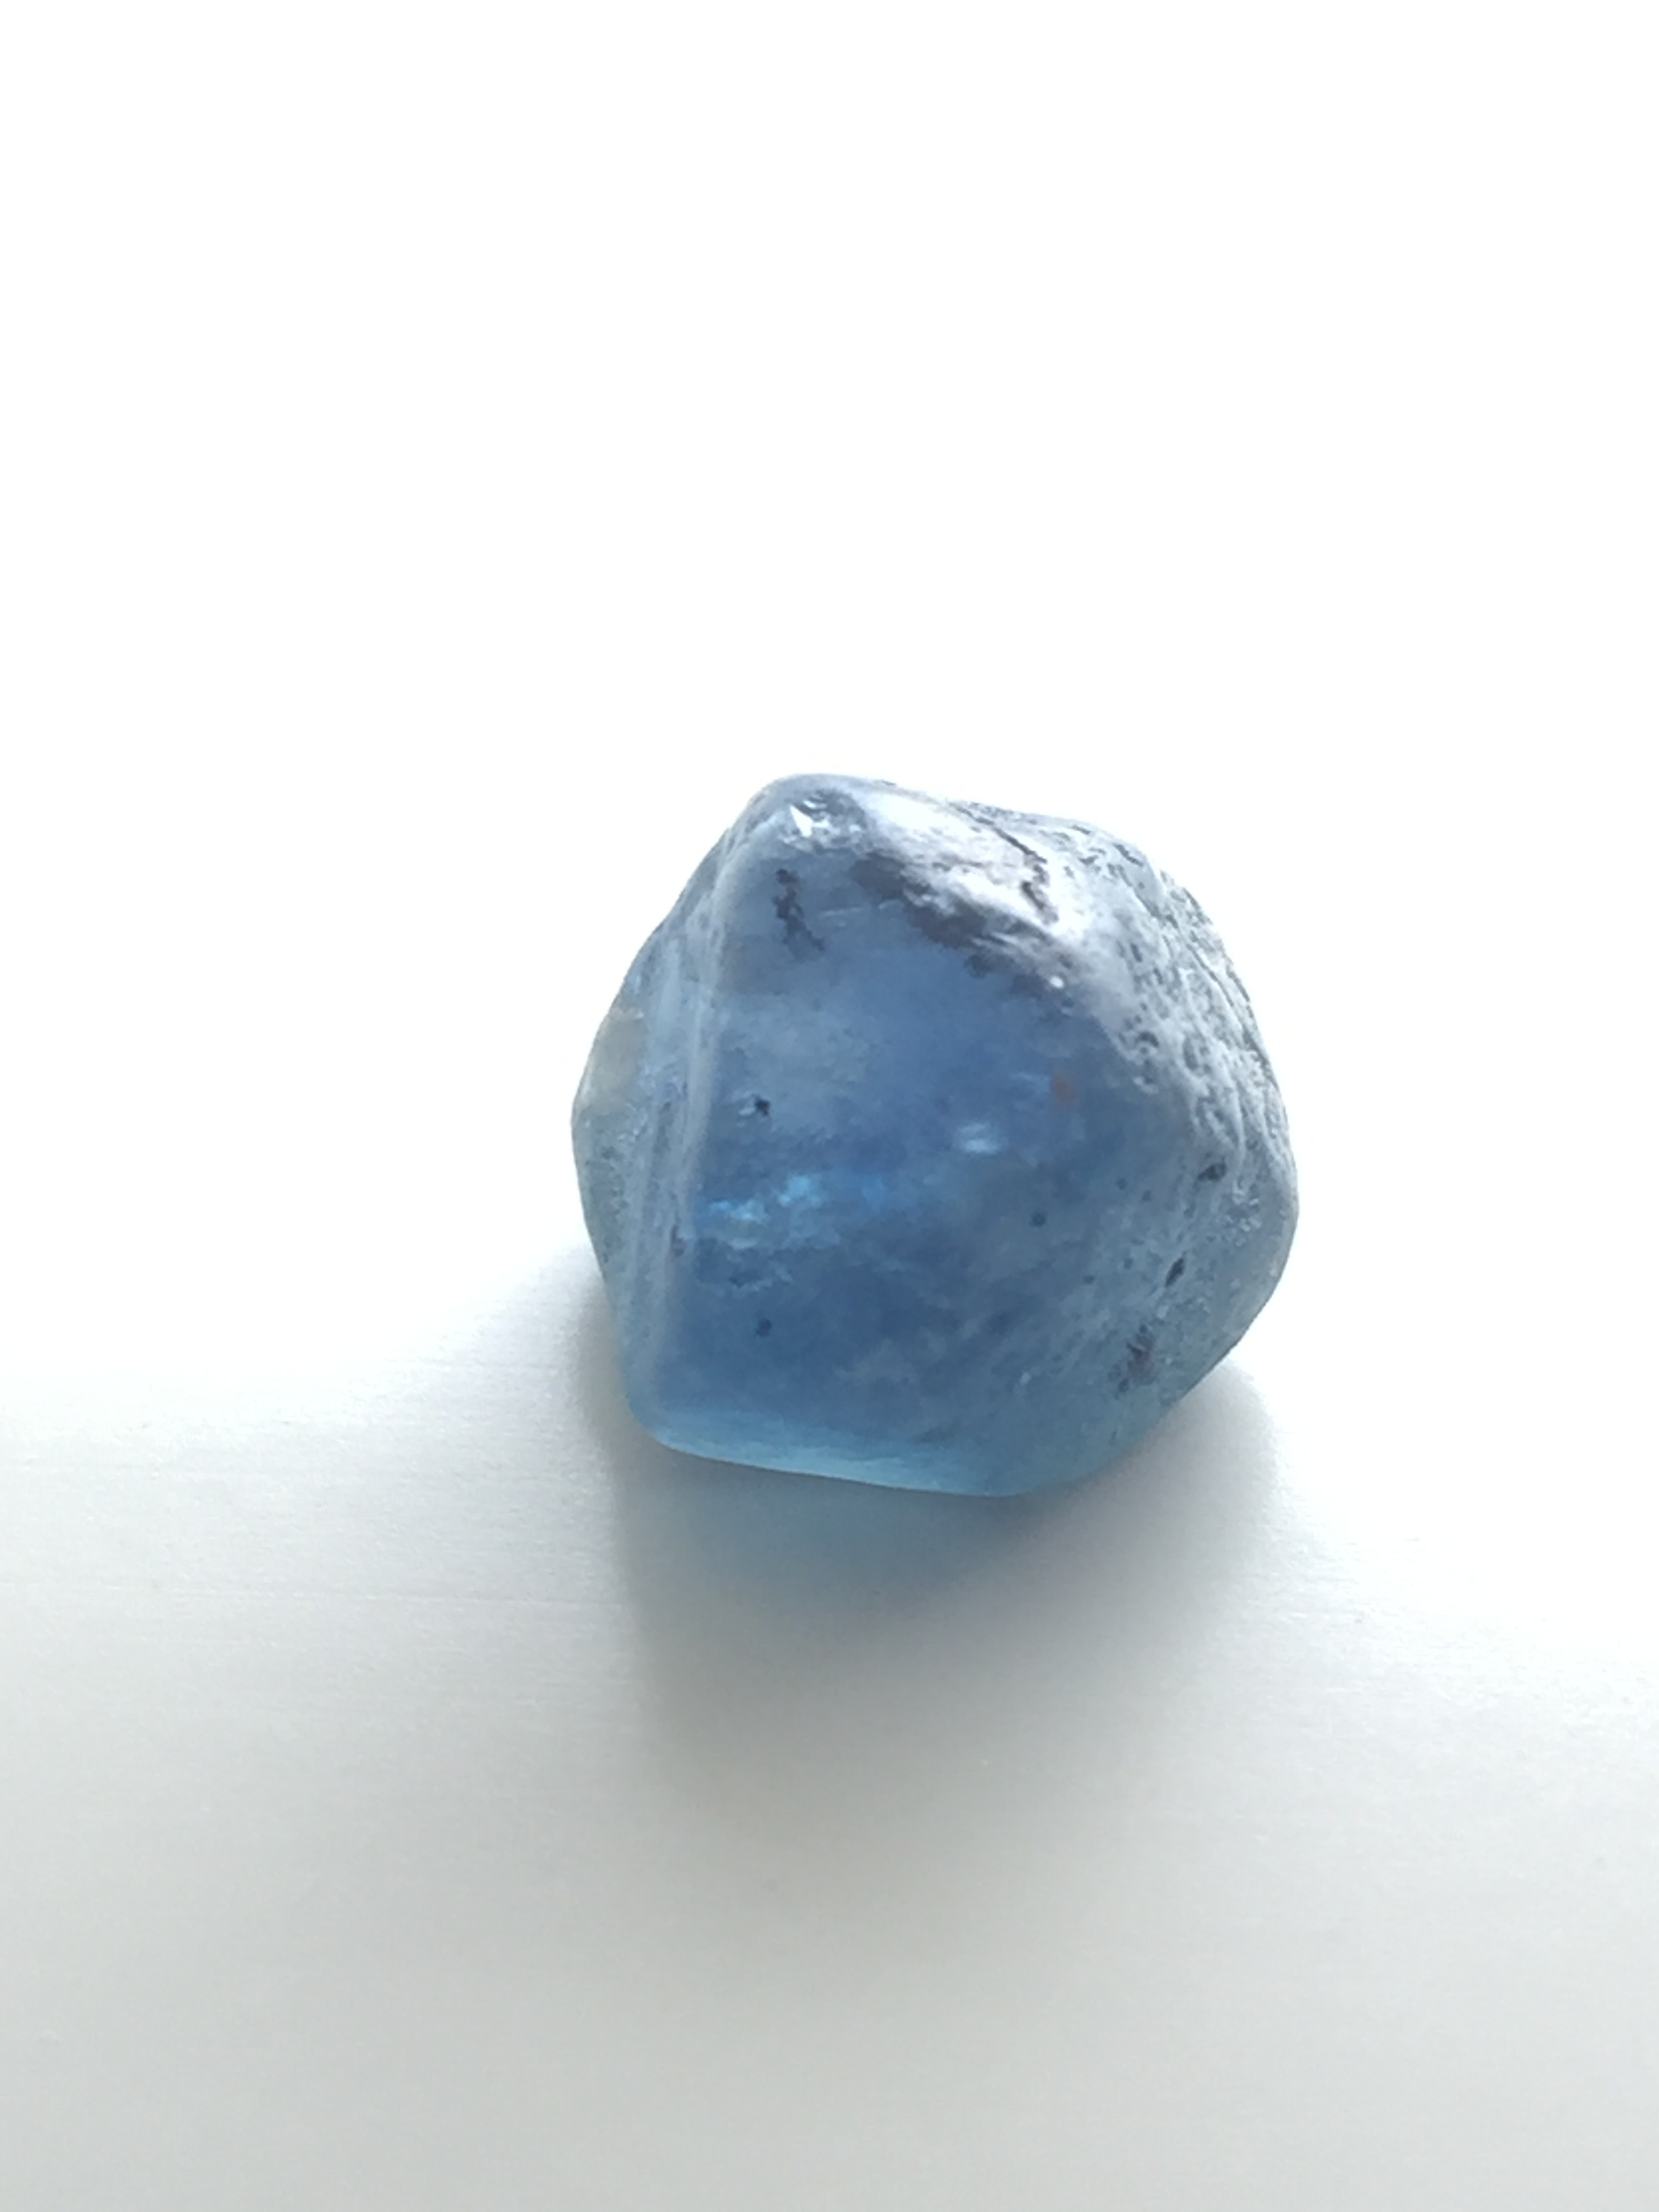 Rough sapphire crystal ~ Montana, United States